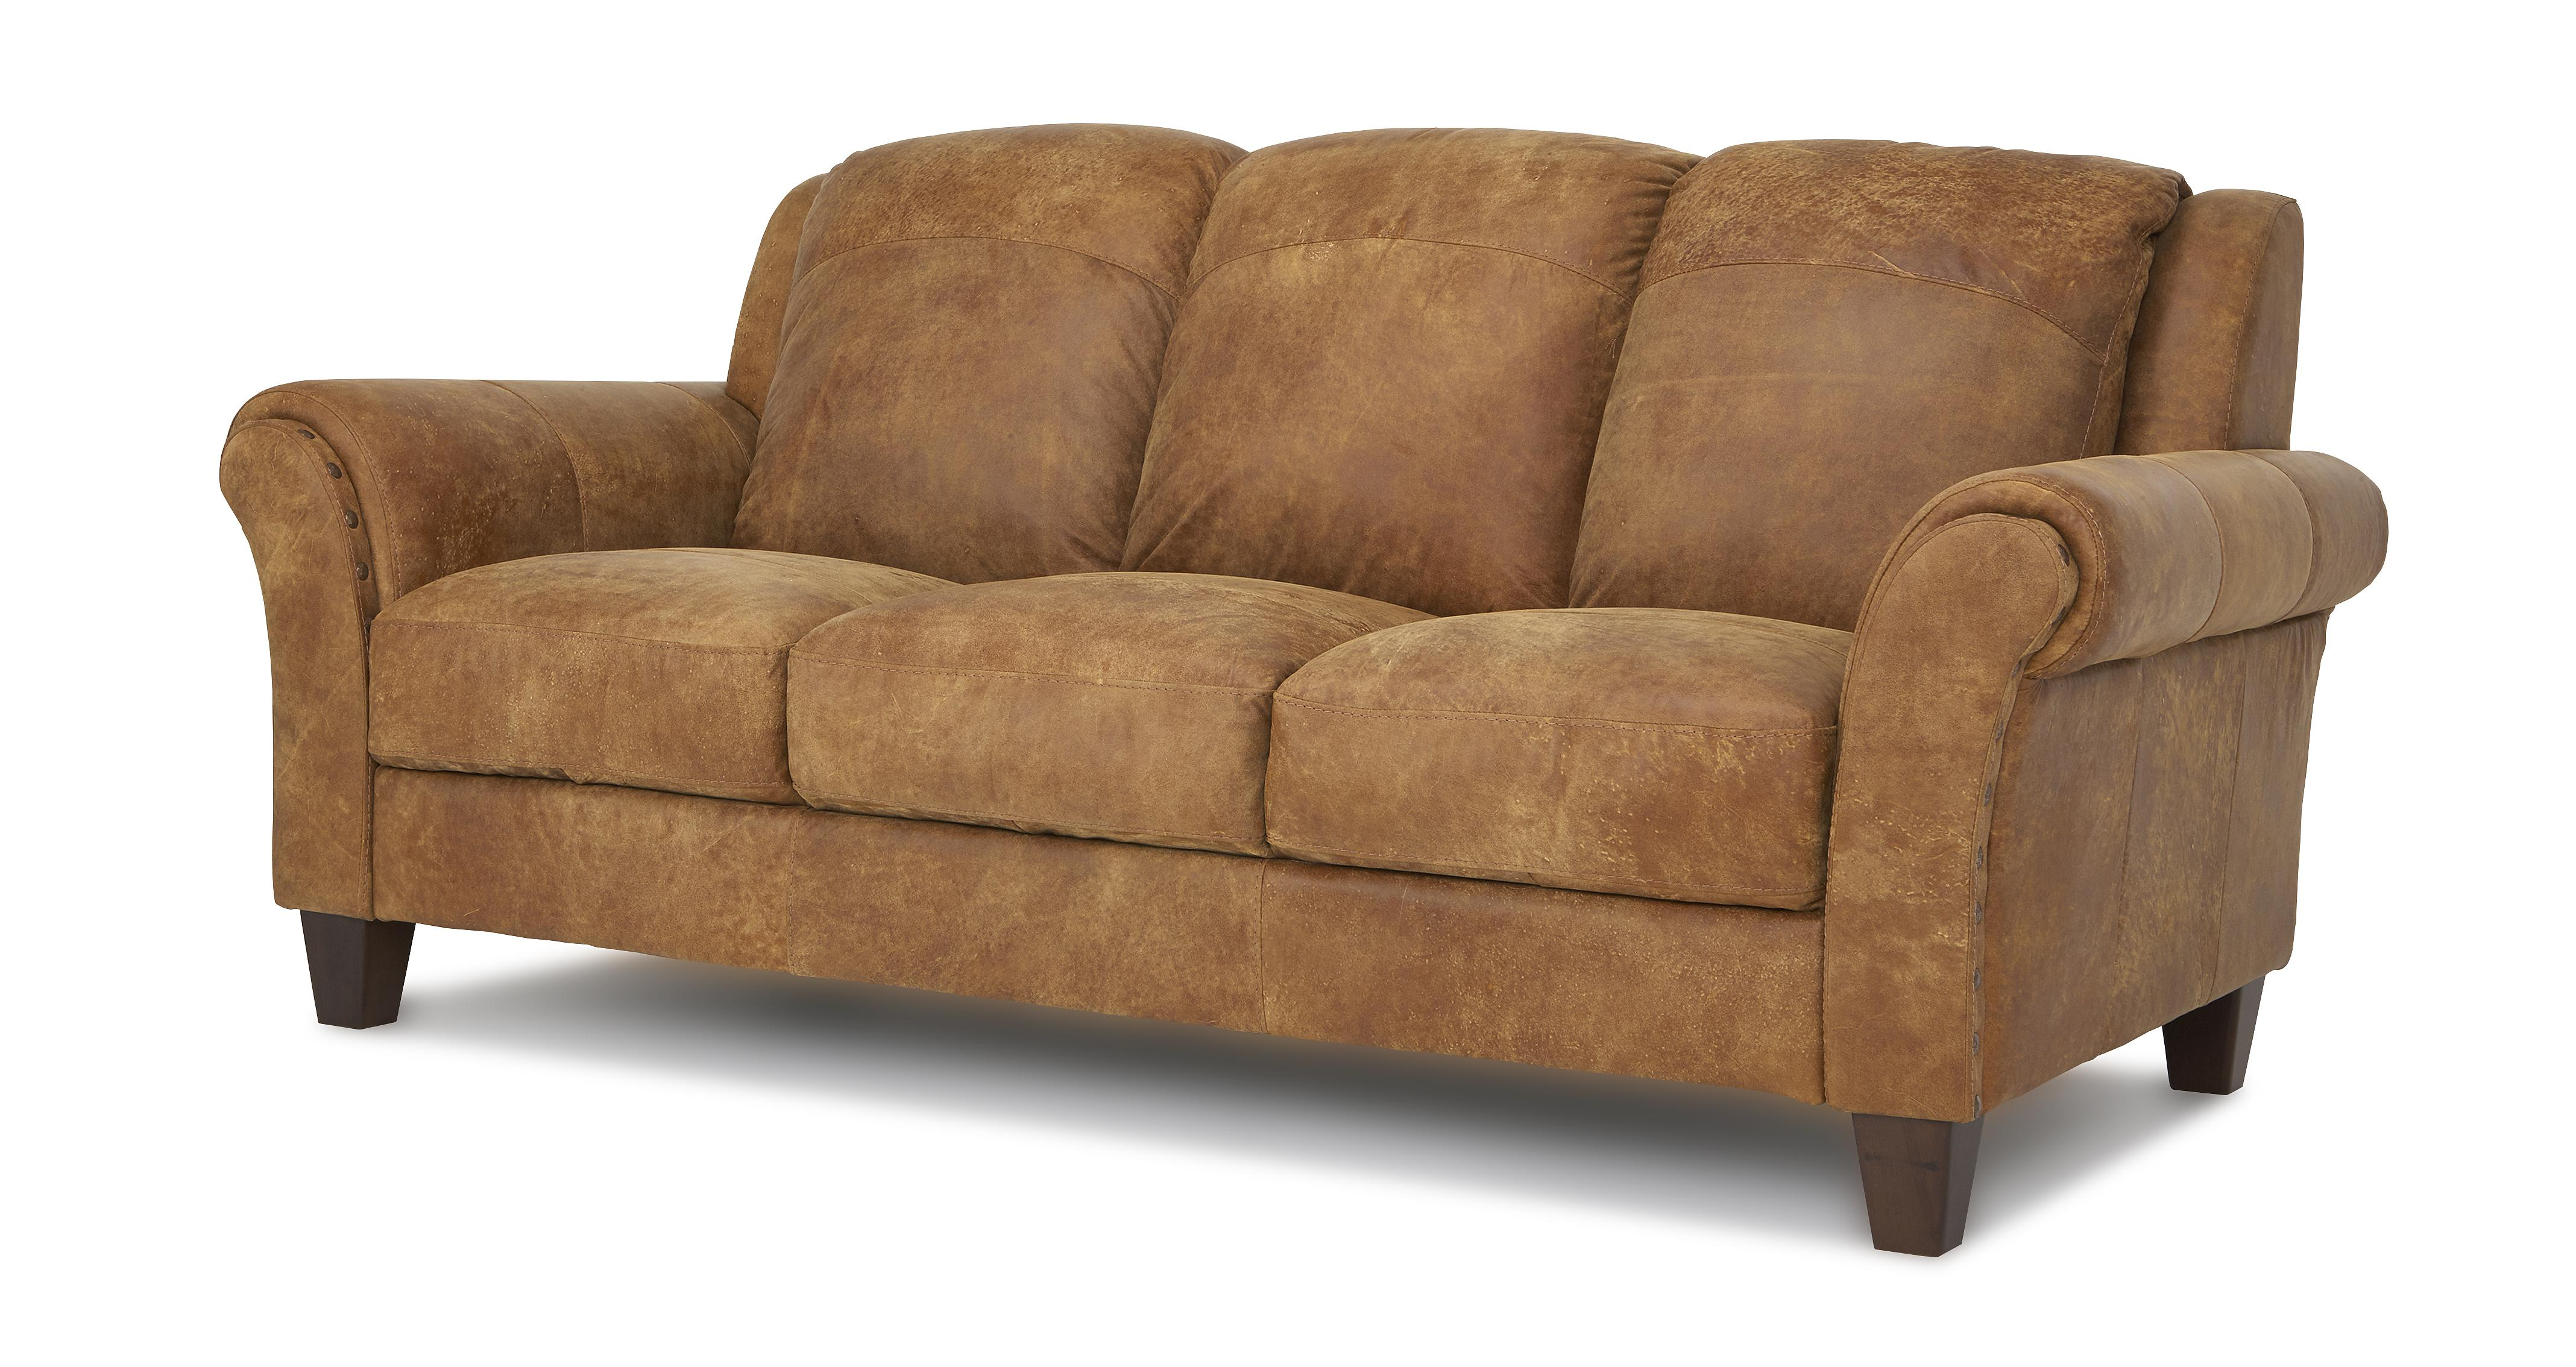 2 seater leather sofas at dfs barcelona modular rattan sofa set peyton review home co